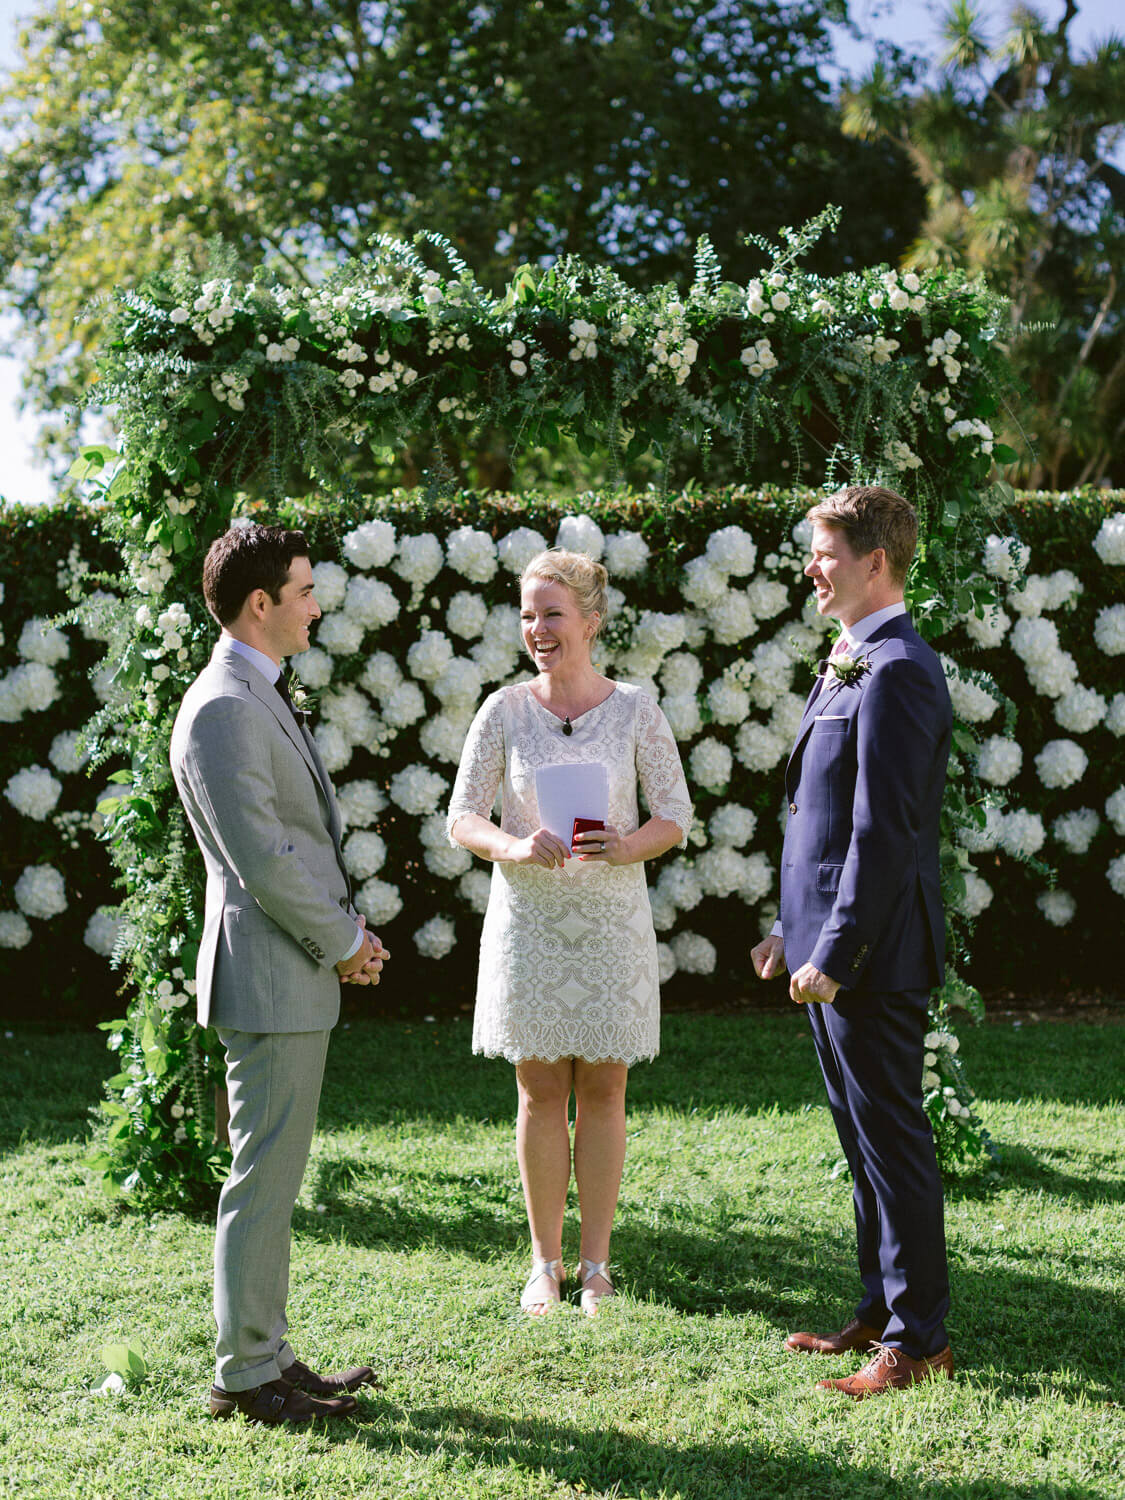 wedding ceremony celebration with a floral arch and white hydrangeas backdrop by Portugal Wedding Photographer